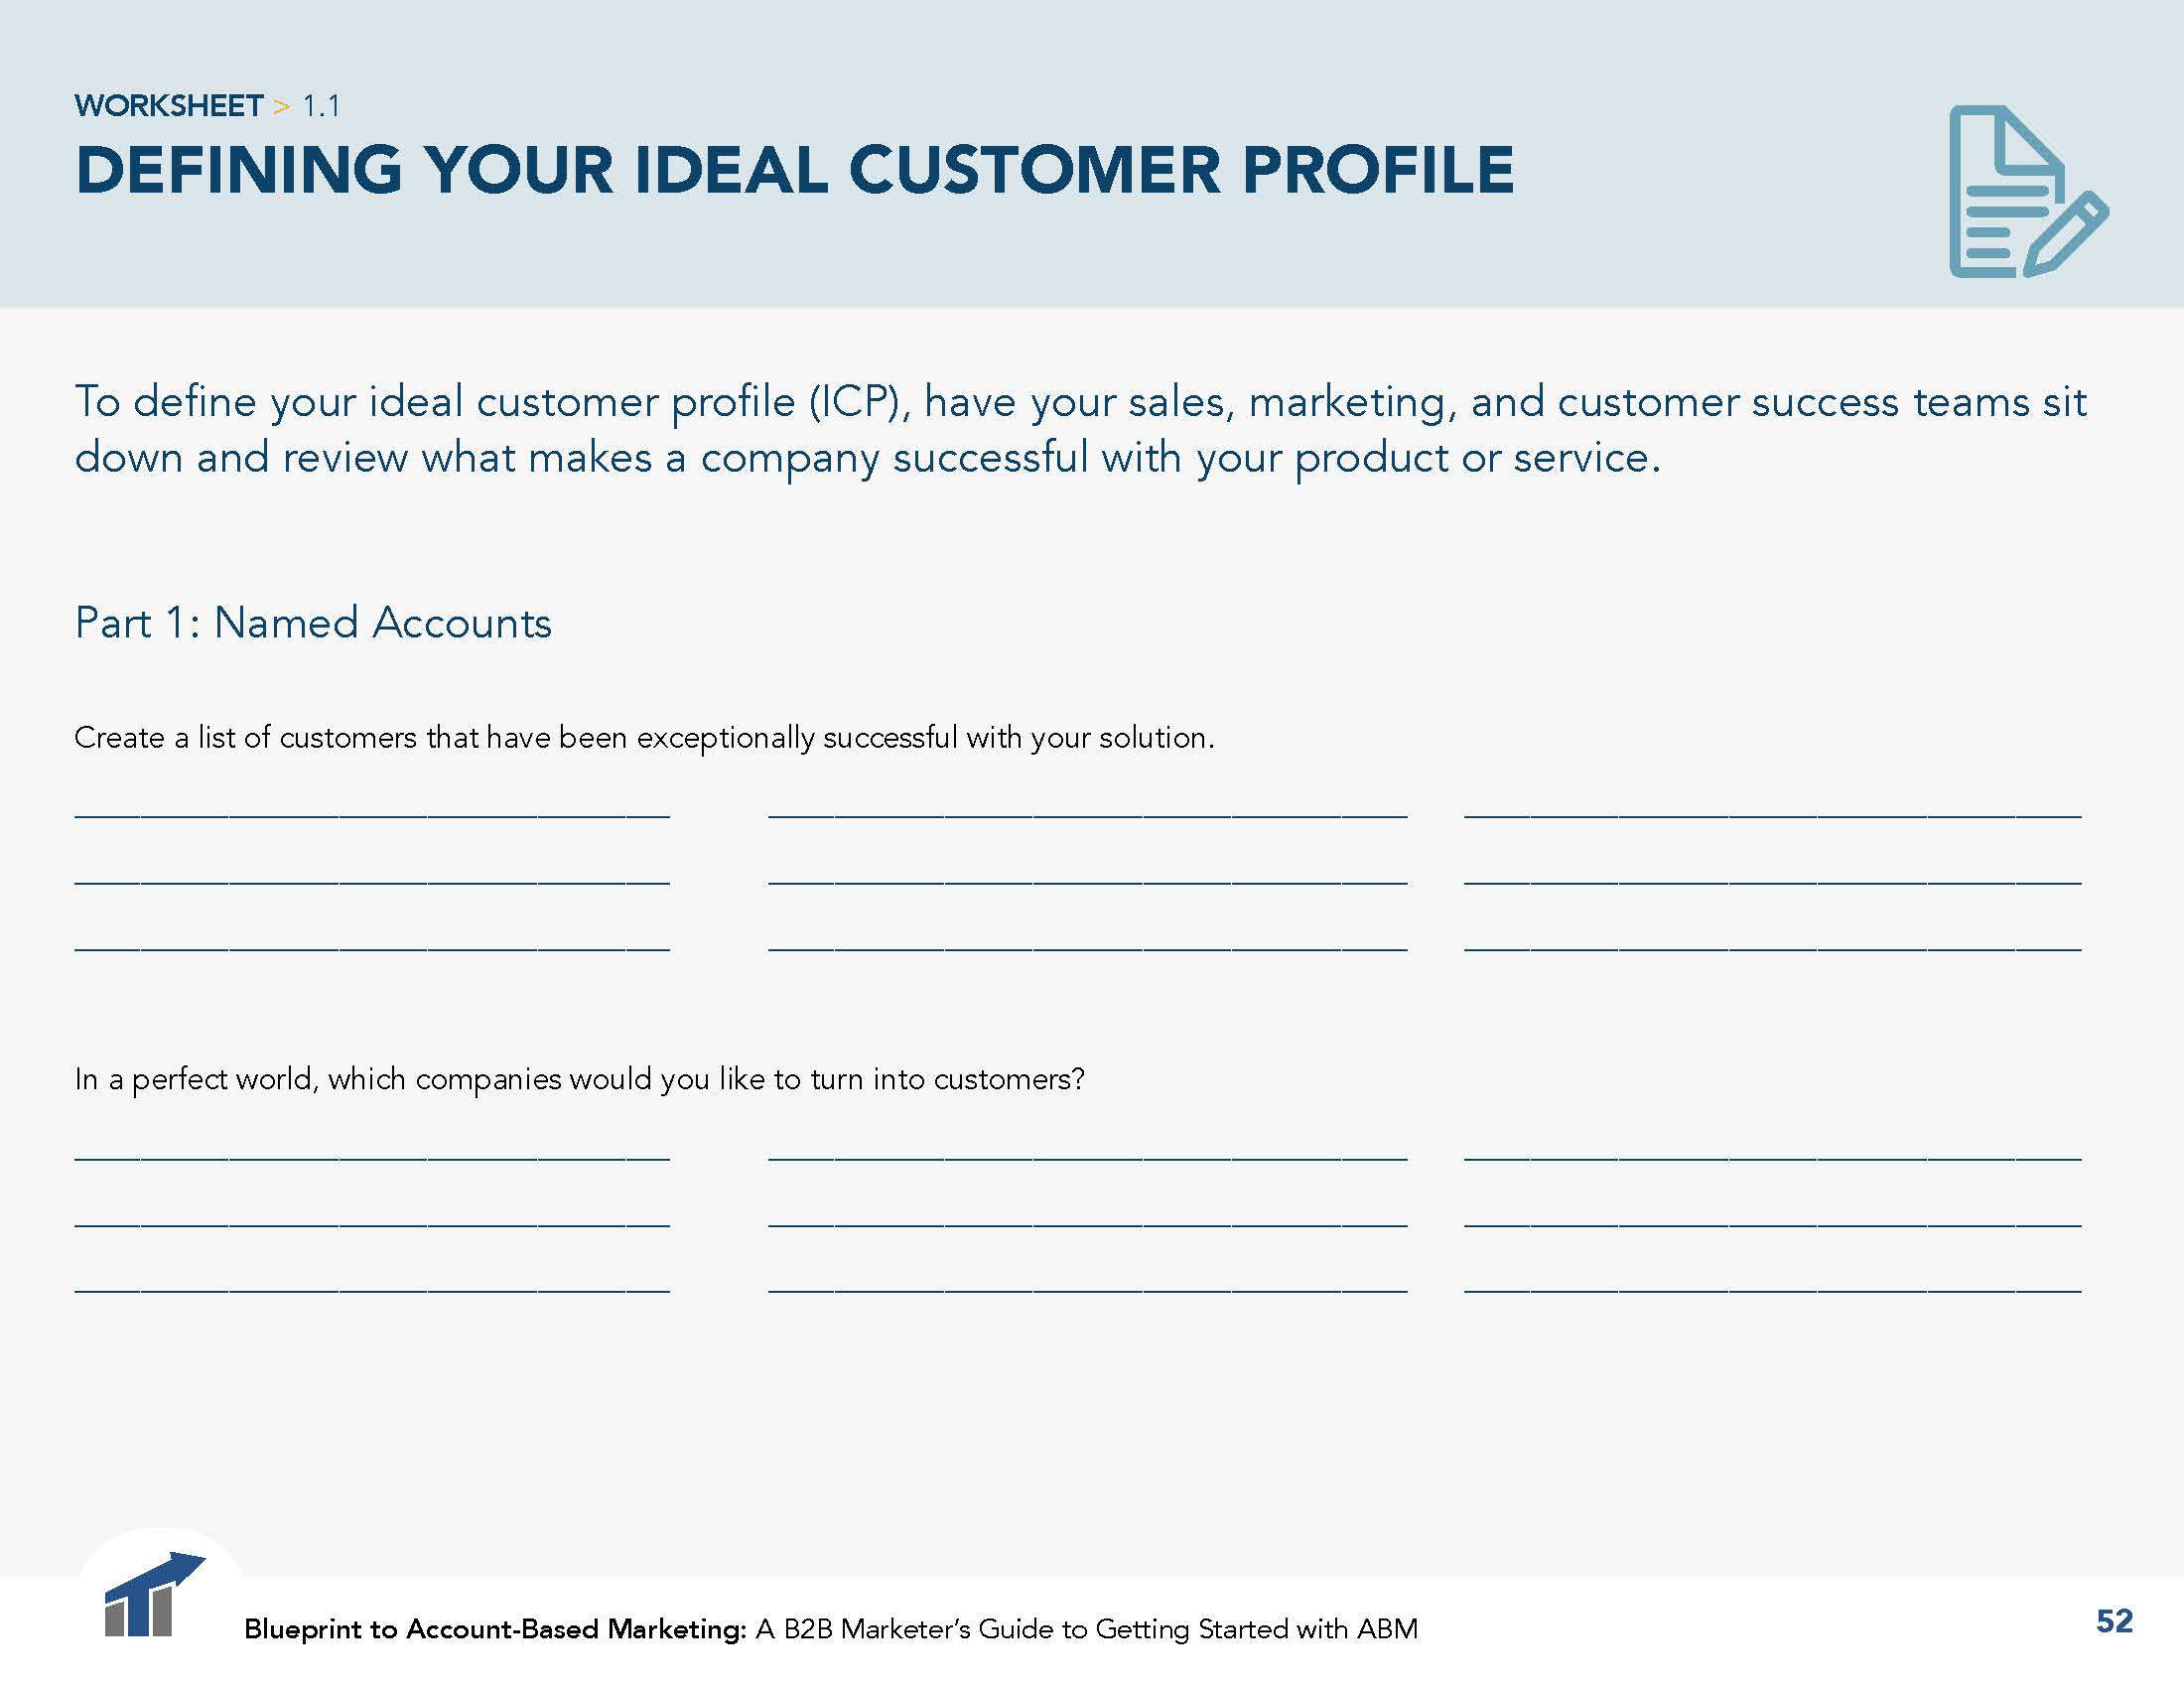 How To Define Your Ideal Customer Profile For Account